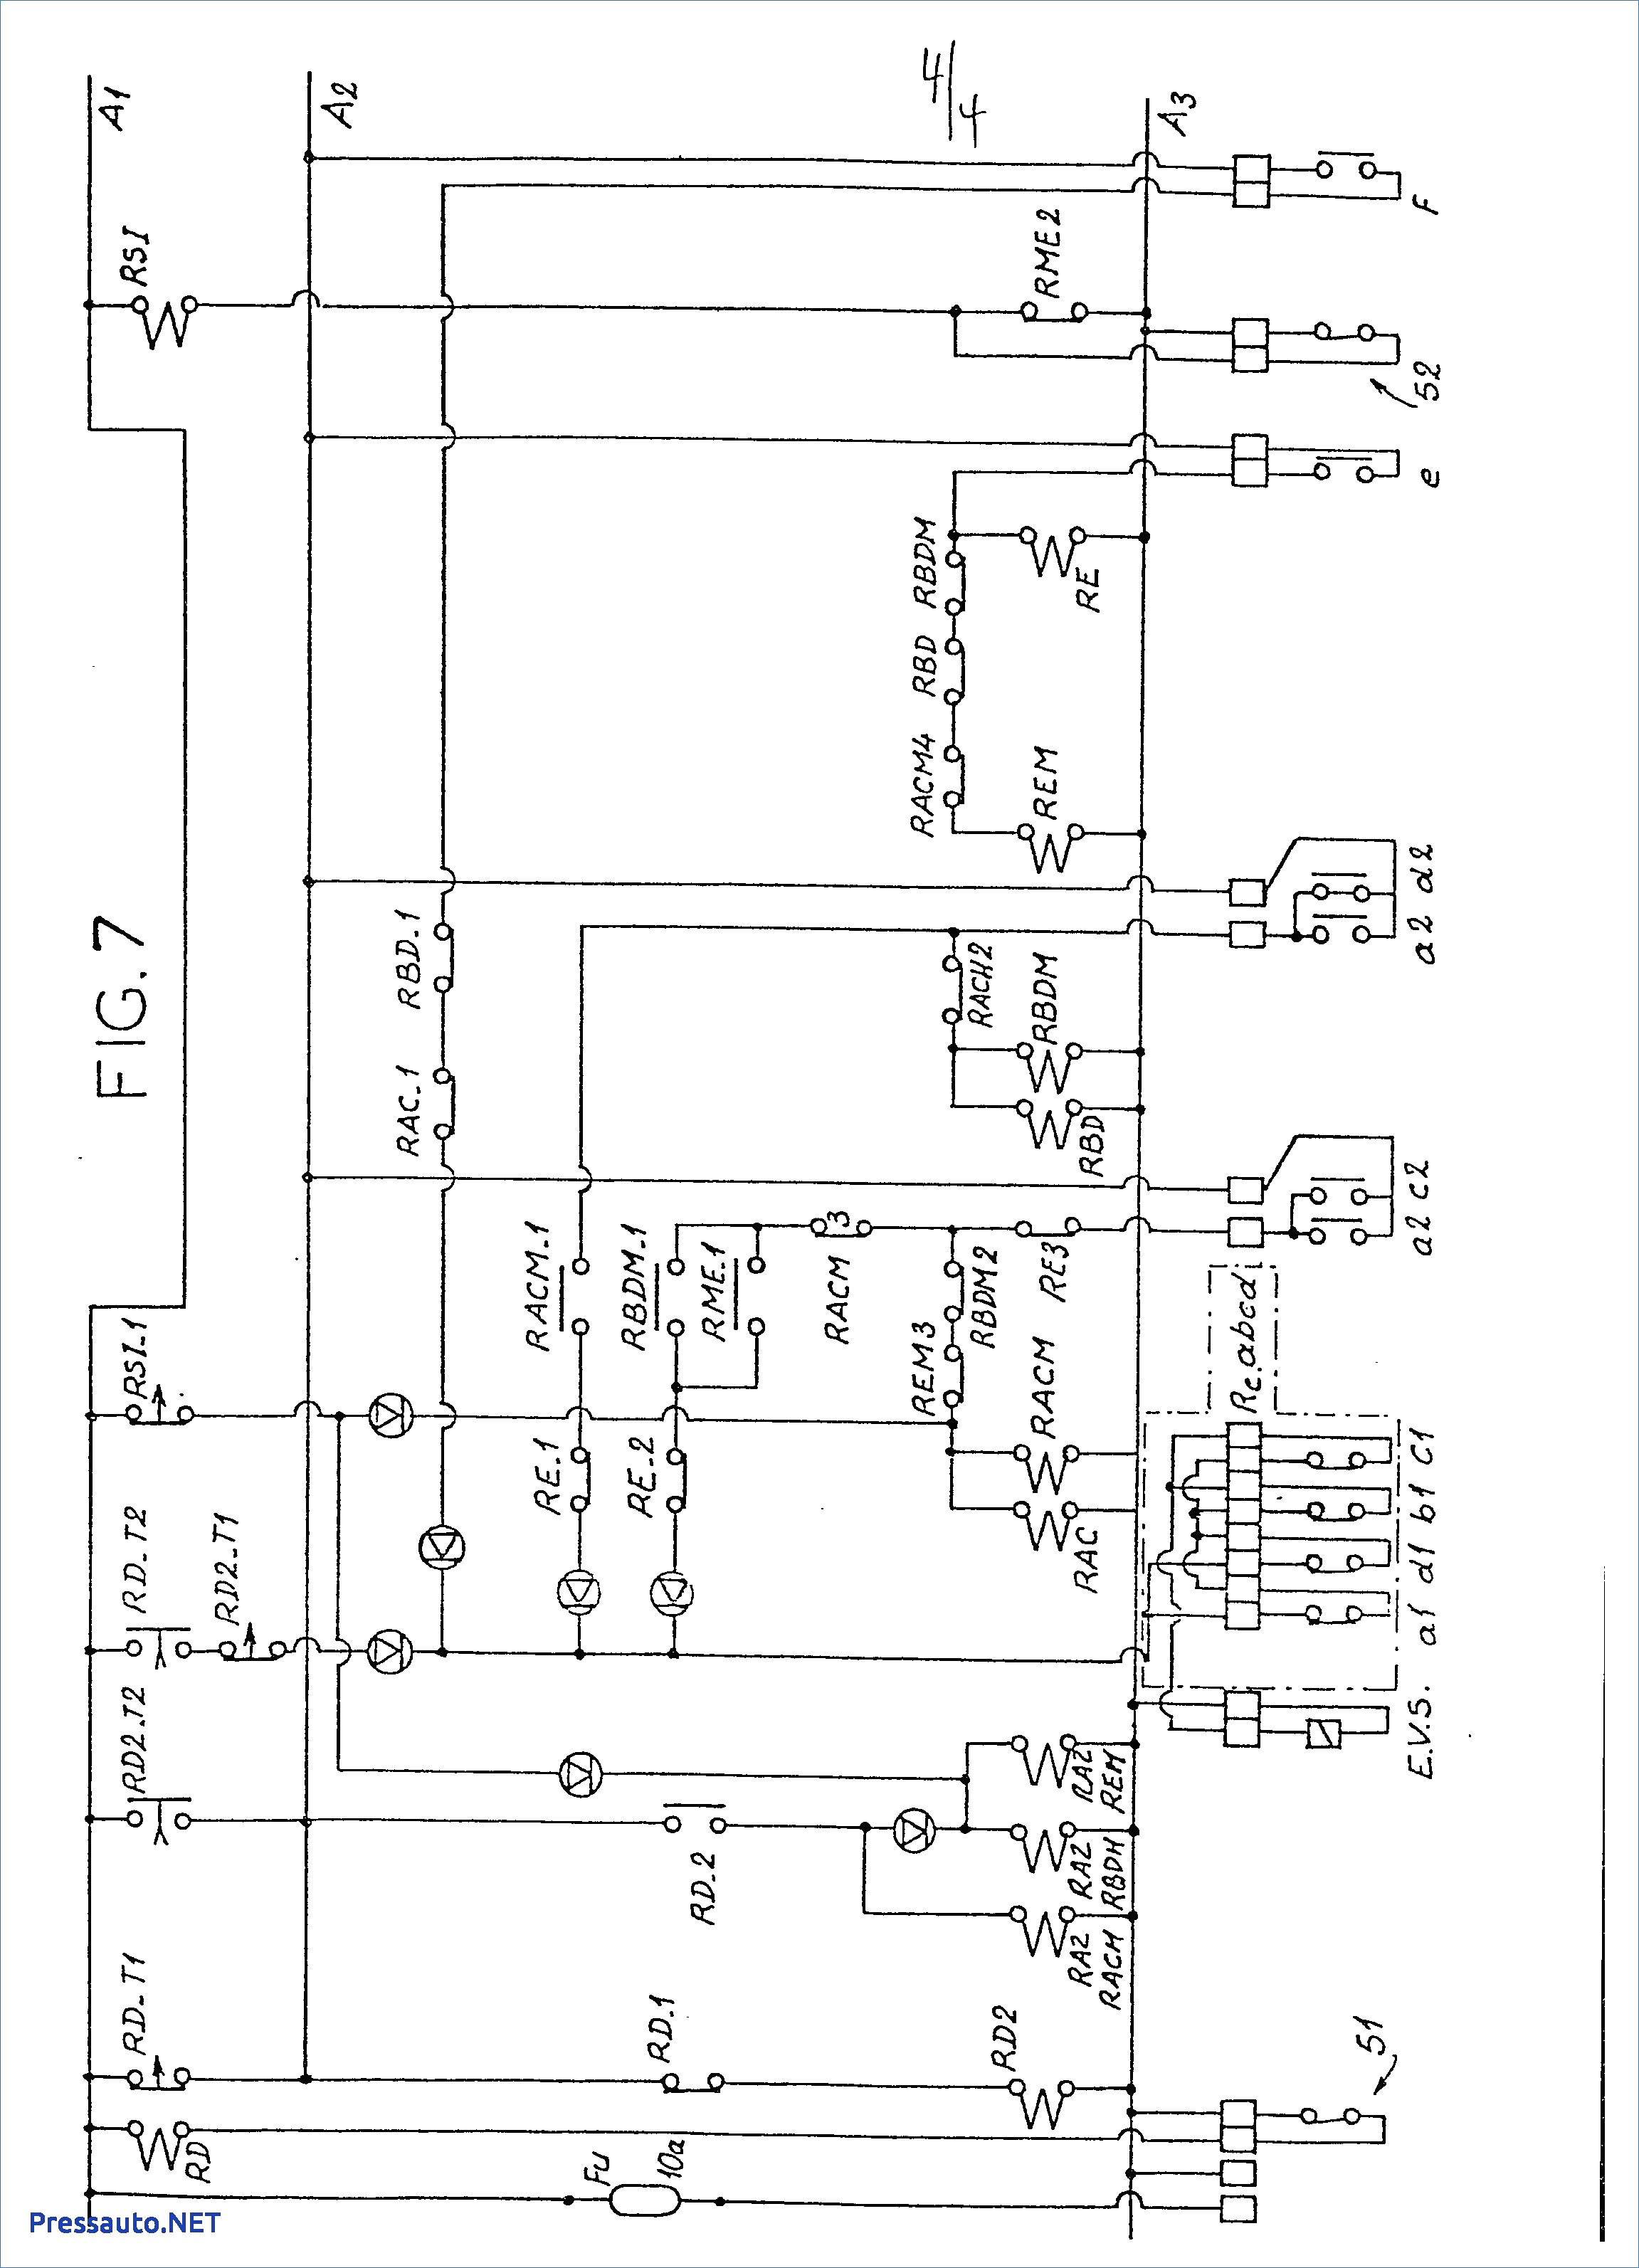 coffing hoist wiring diagram nissan skyline r33 stereo cm switch diagrams hight resolution of chain third level chicago pneumatic